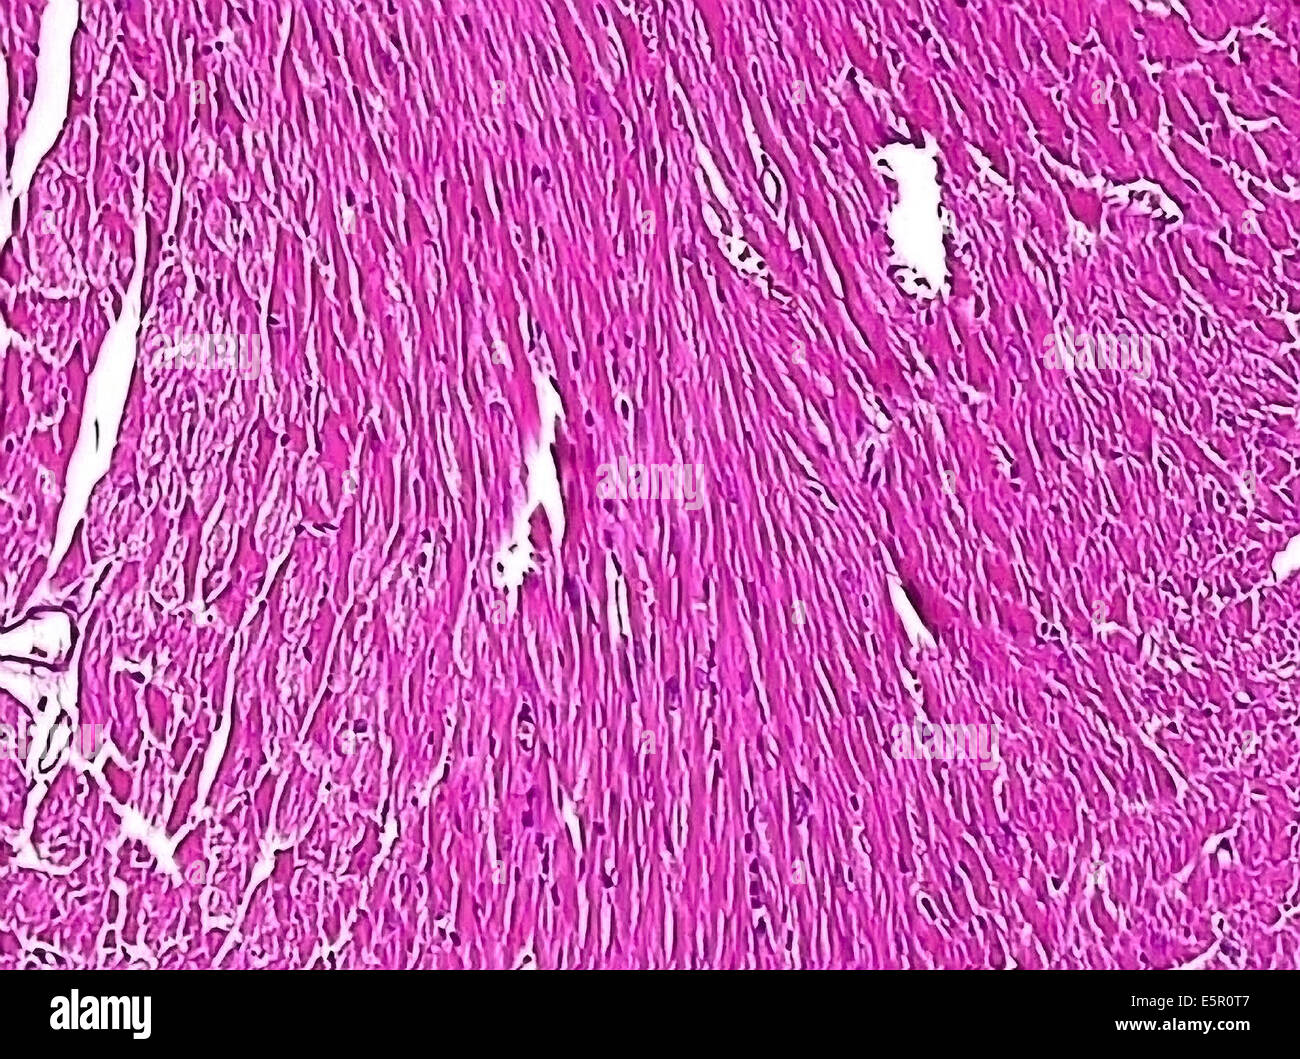 Cardiac Muscle Cell Stock Photos & Cardiac Muscle Cell Stock Images ...